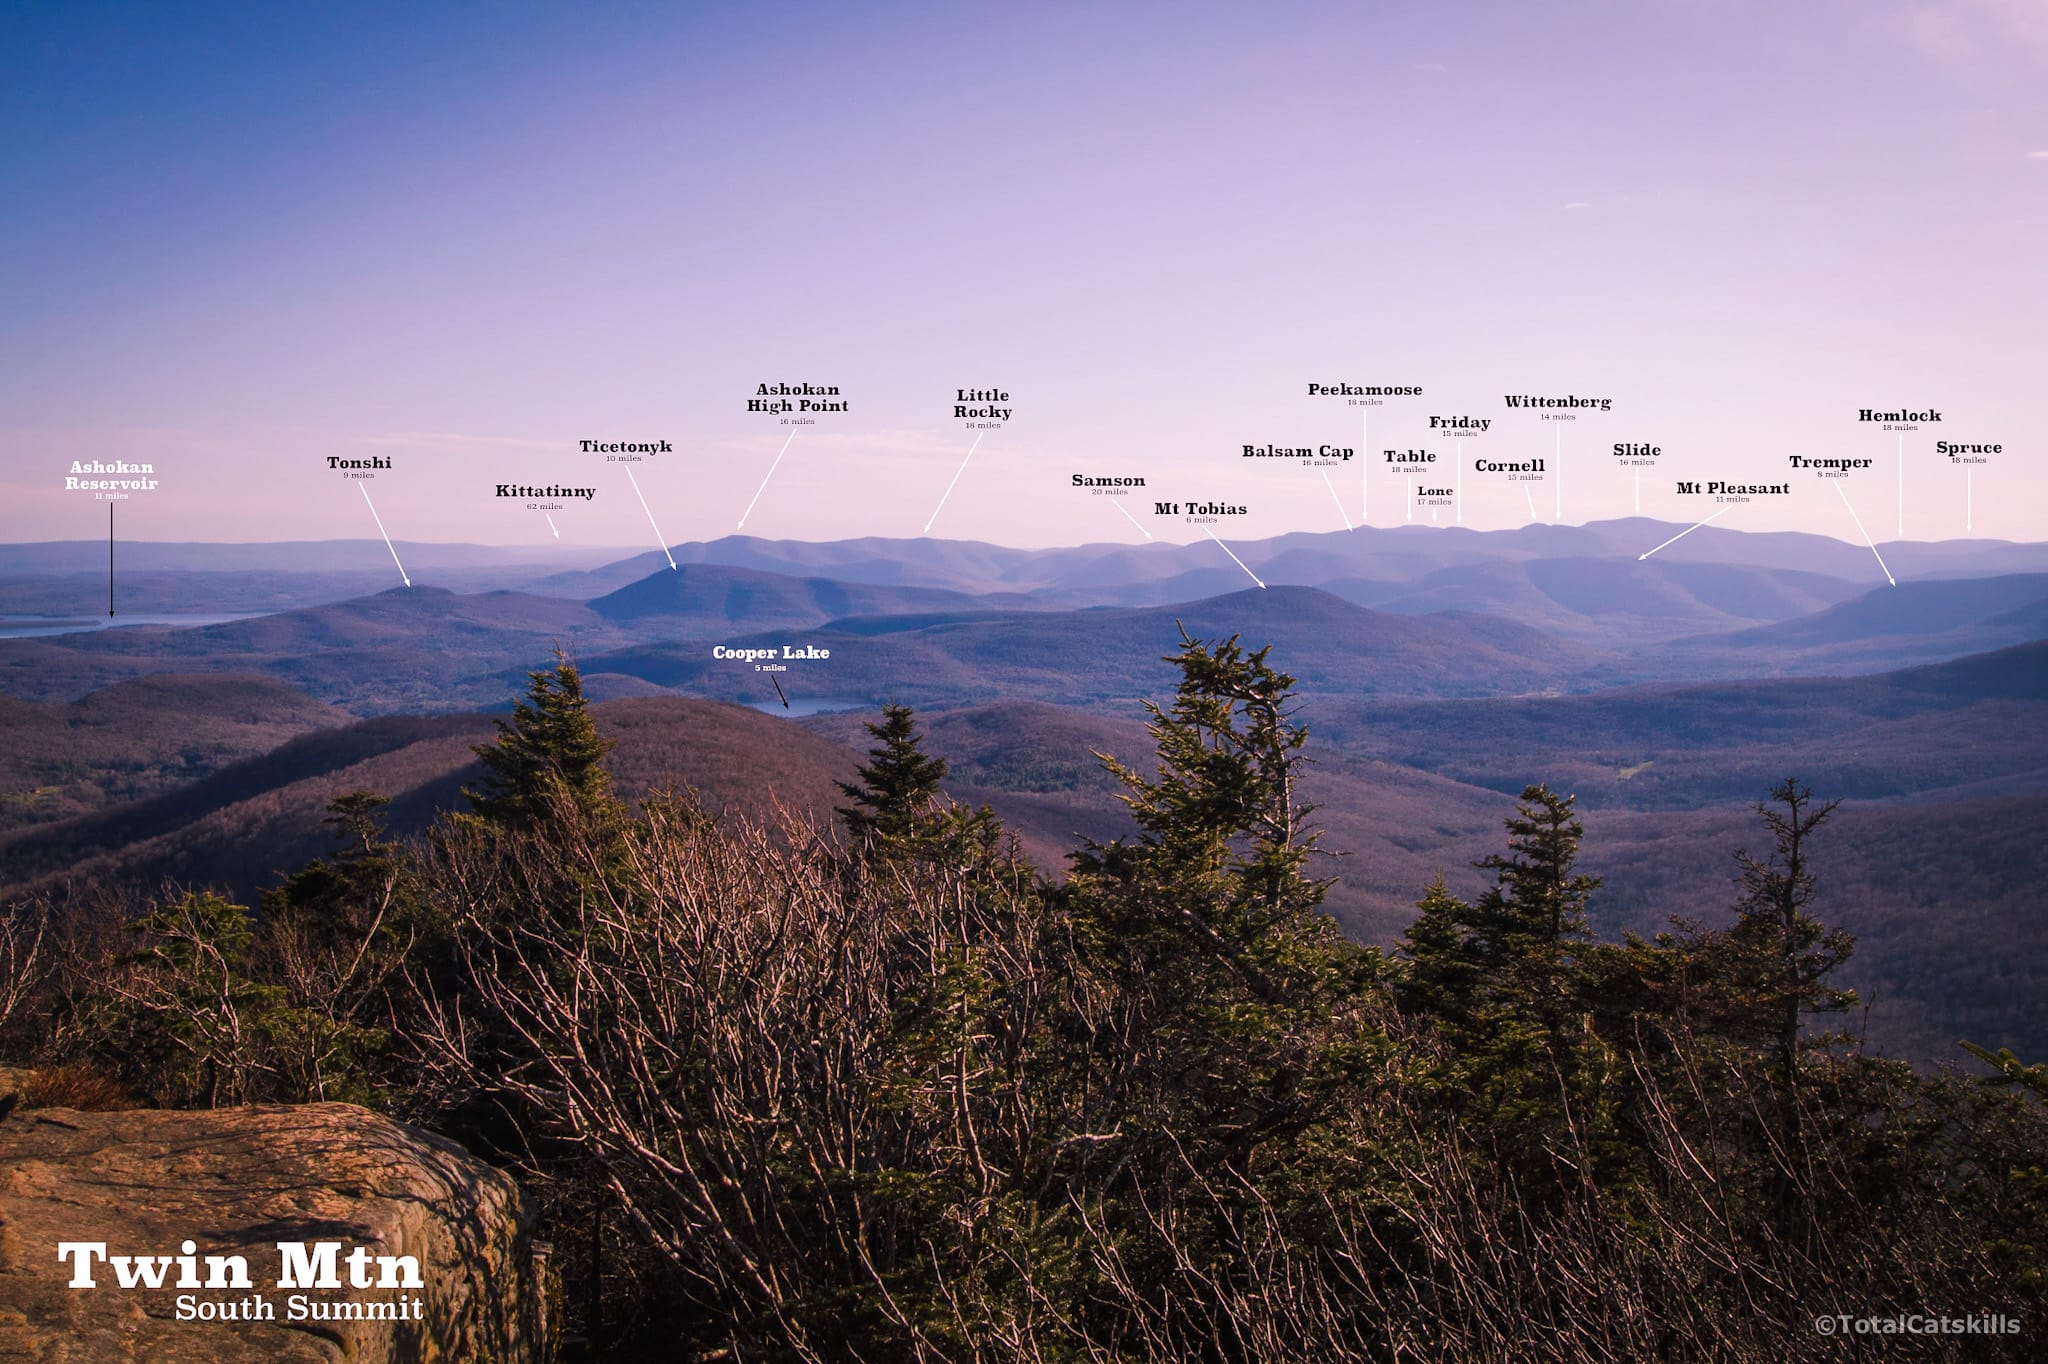 labelled view of catskills from Twin Mountain